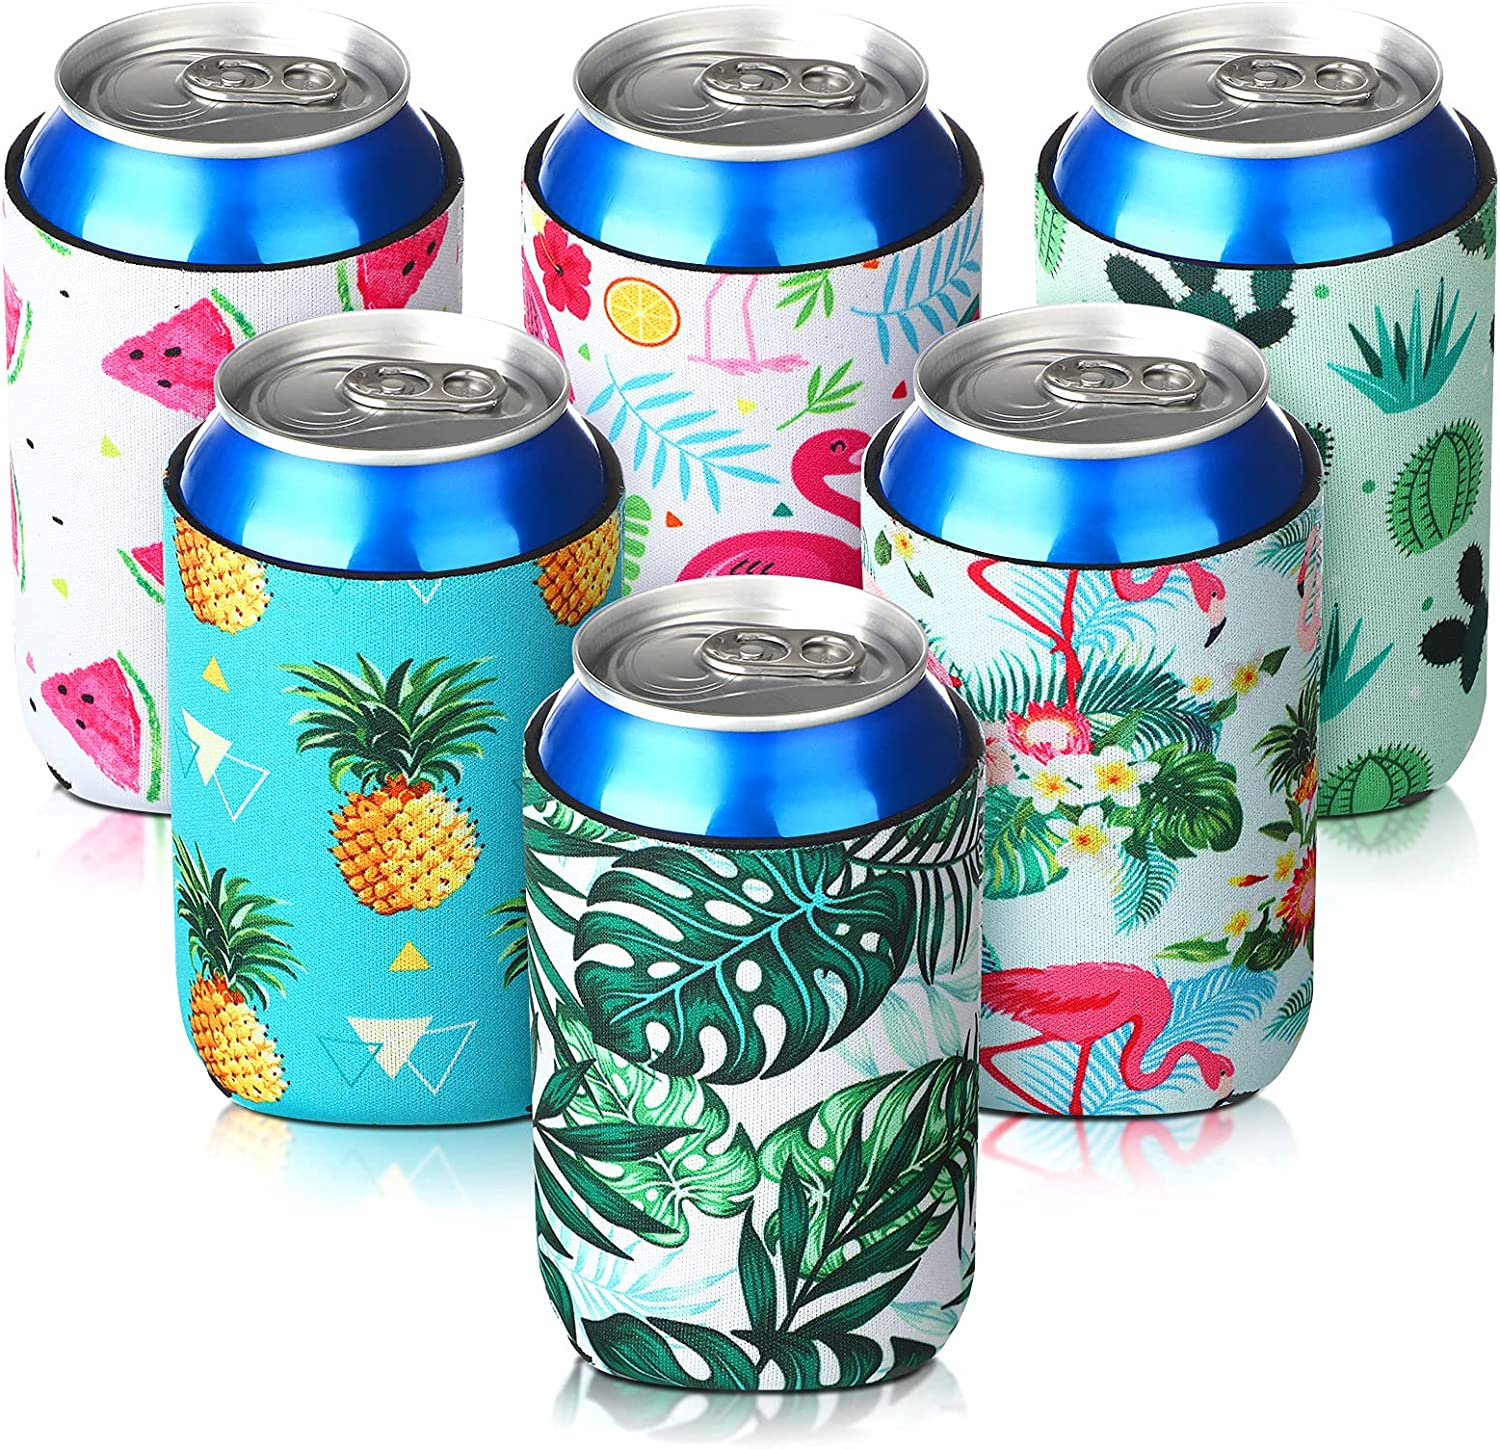 Slim Can Sleeves, Reusable Neoprene Bottle Insulator Sleeve, 12 oz Beverage Can Coolers for Energy Drink and Beer Cans, 6 Pieces (Hawaii Style)